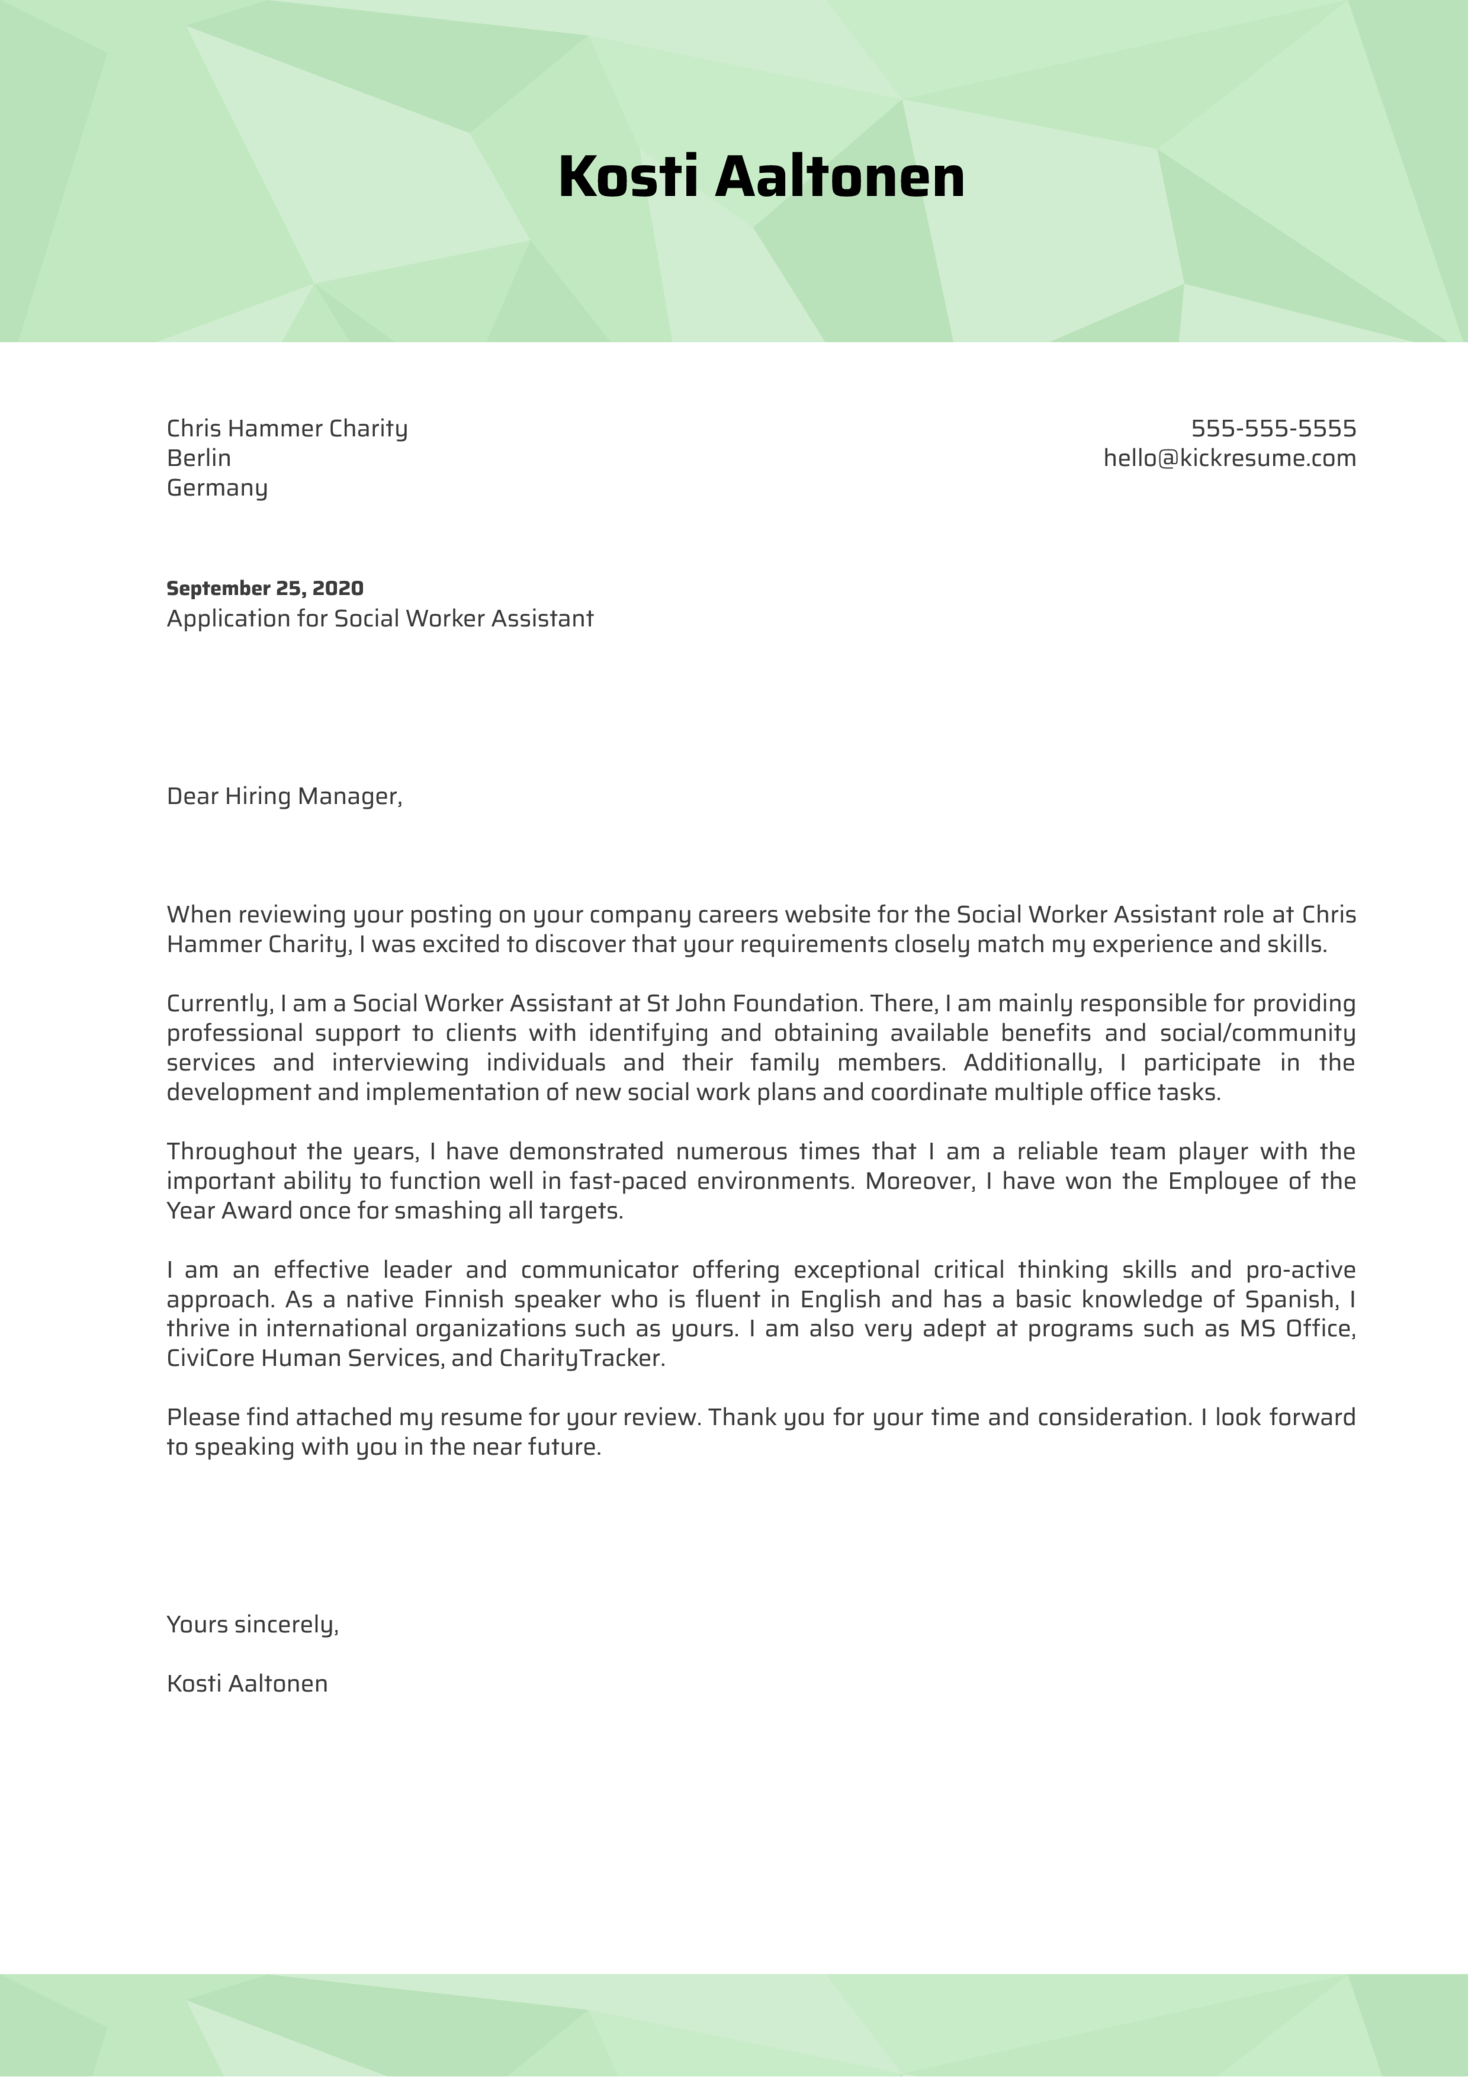 Social Worker Assistant Cover Letter Example